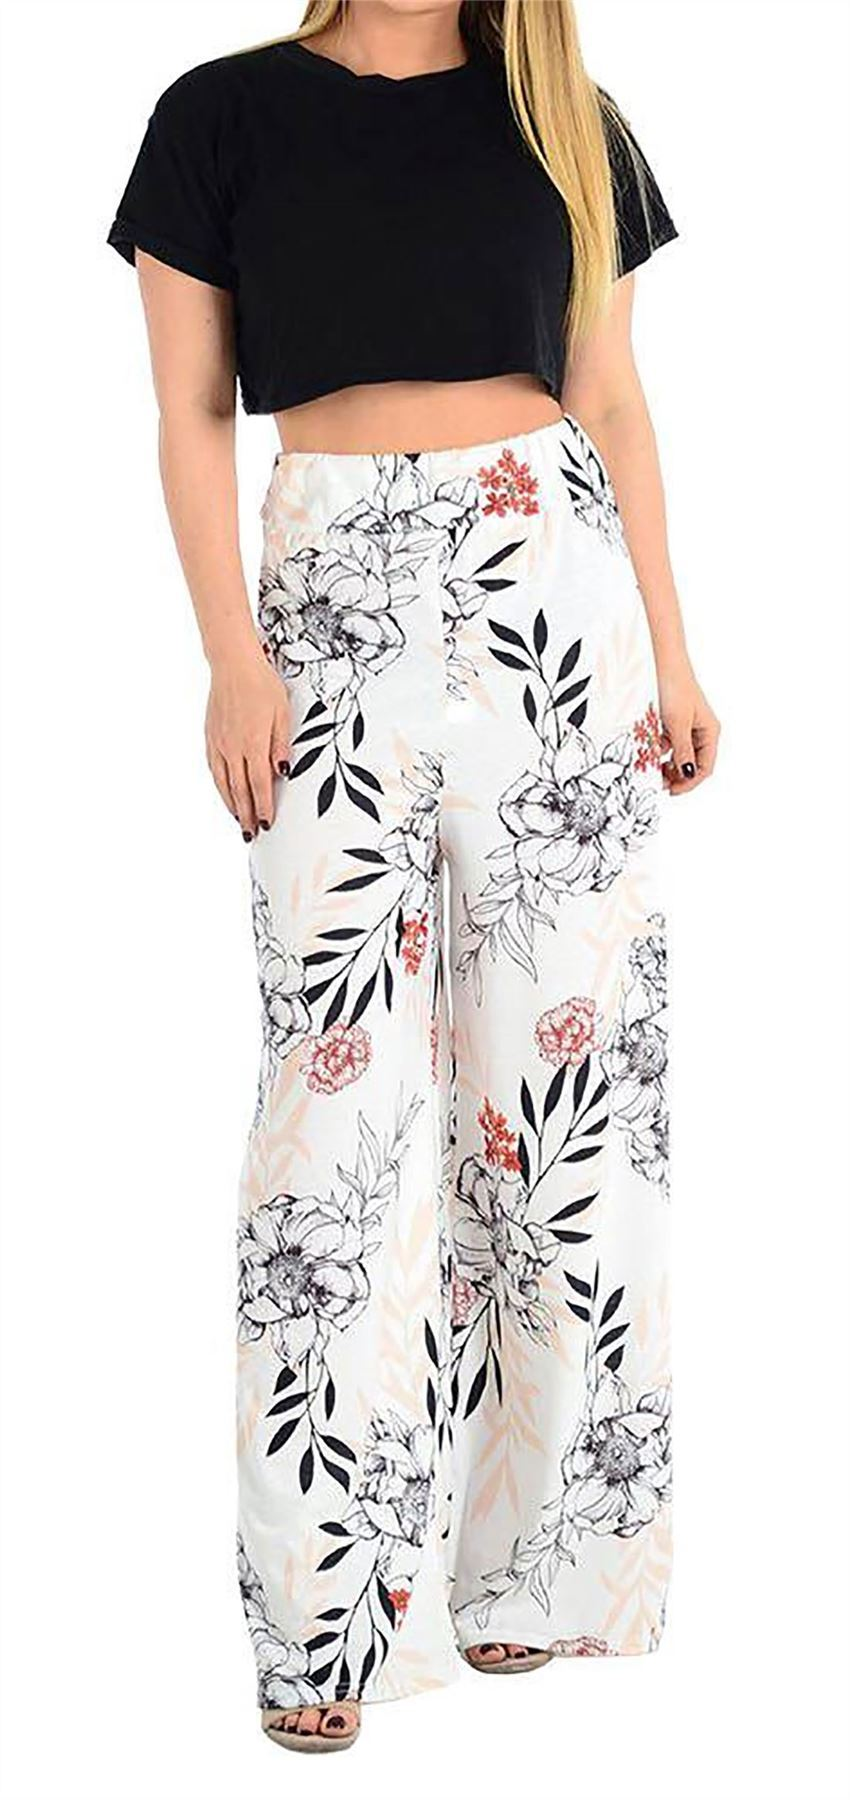 New-Ladies-Floral-Printed-Wide-Leg-Flared-Parallel-Baggy-Trousers-Pants-Palazzo thumbnail 22